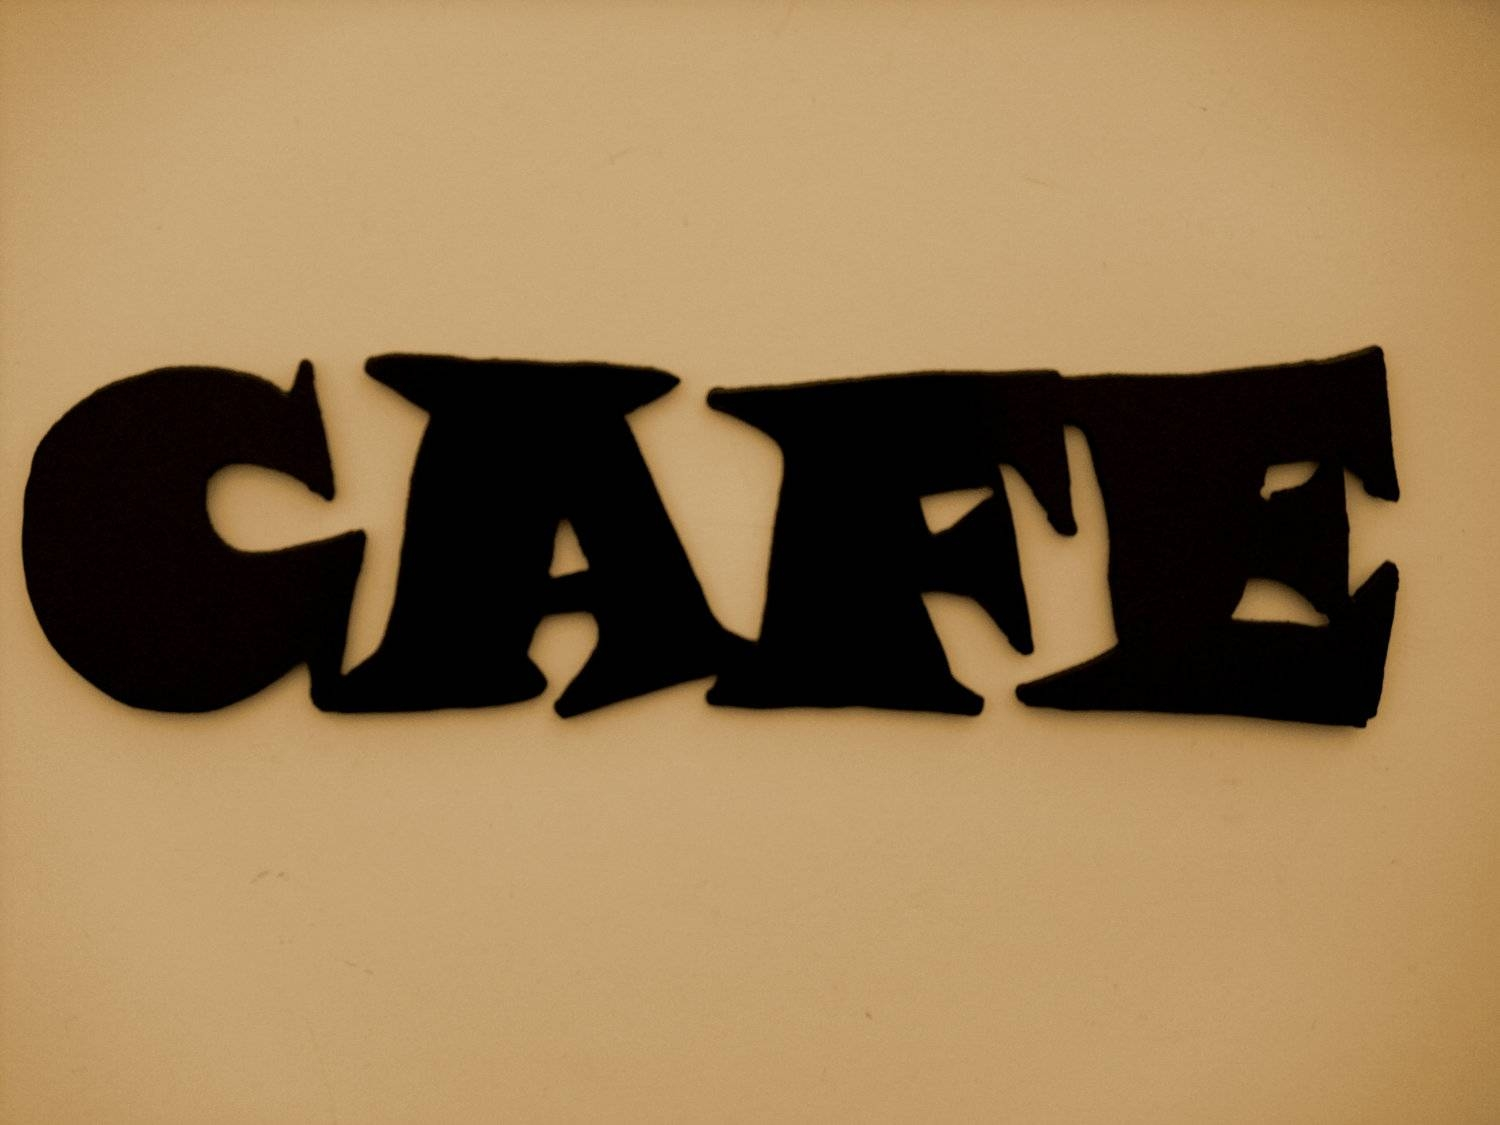 Metal Wall Art Decor Cafe Word Kitchen Free Shipping Regarding Current Cafe Metal Wall Art (View 4 of 20)